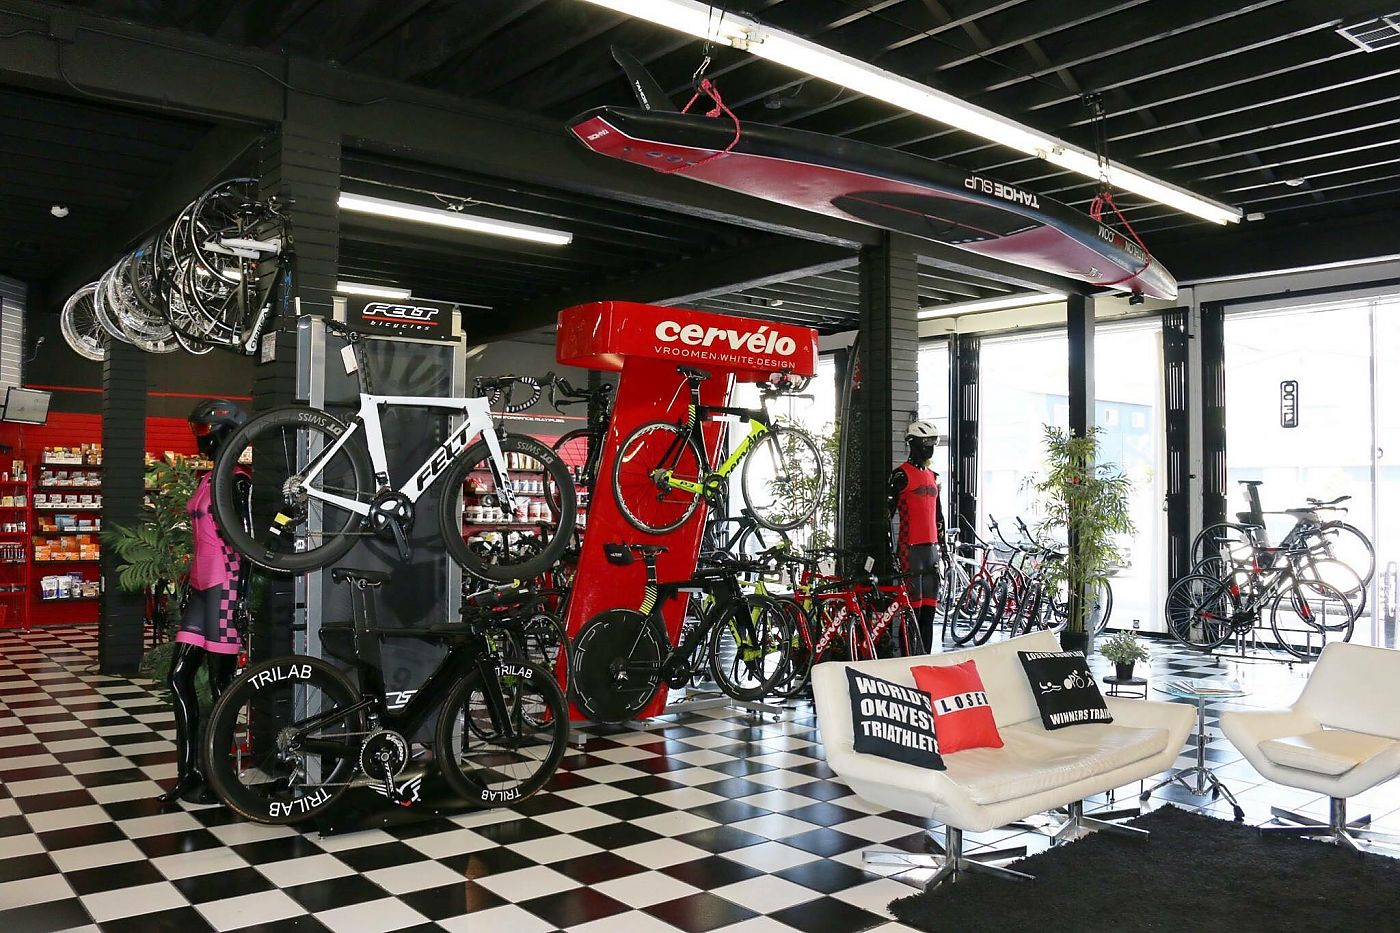 Triathlon LAB sold to Robert Keating | Bicycle Retailer and